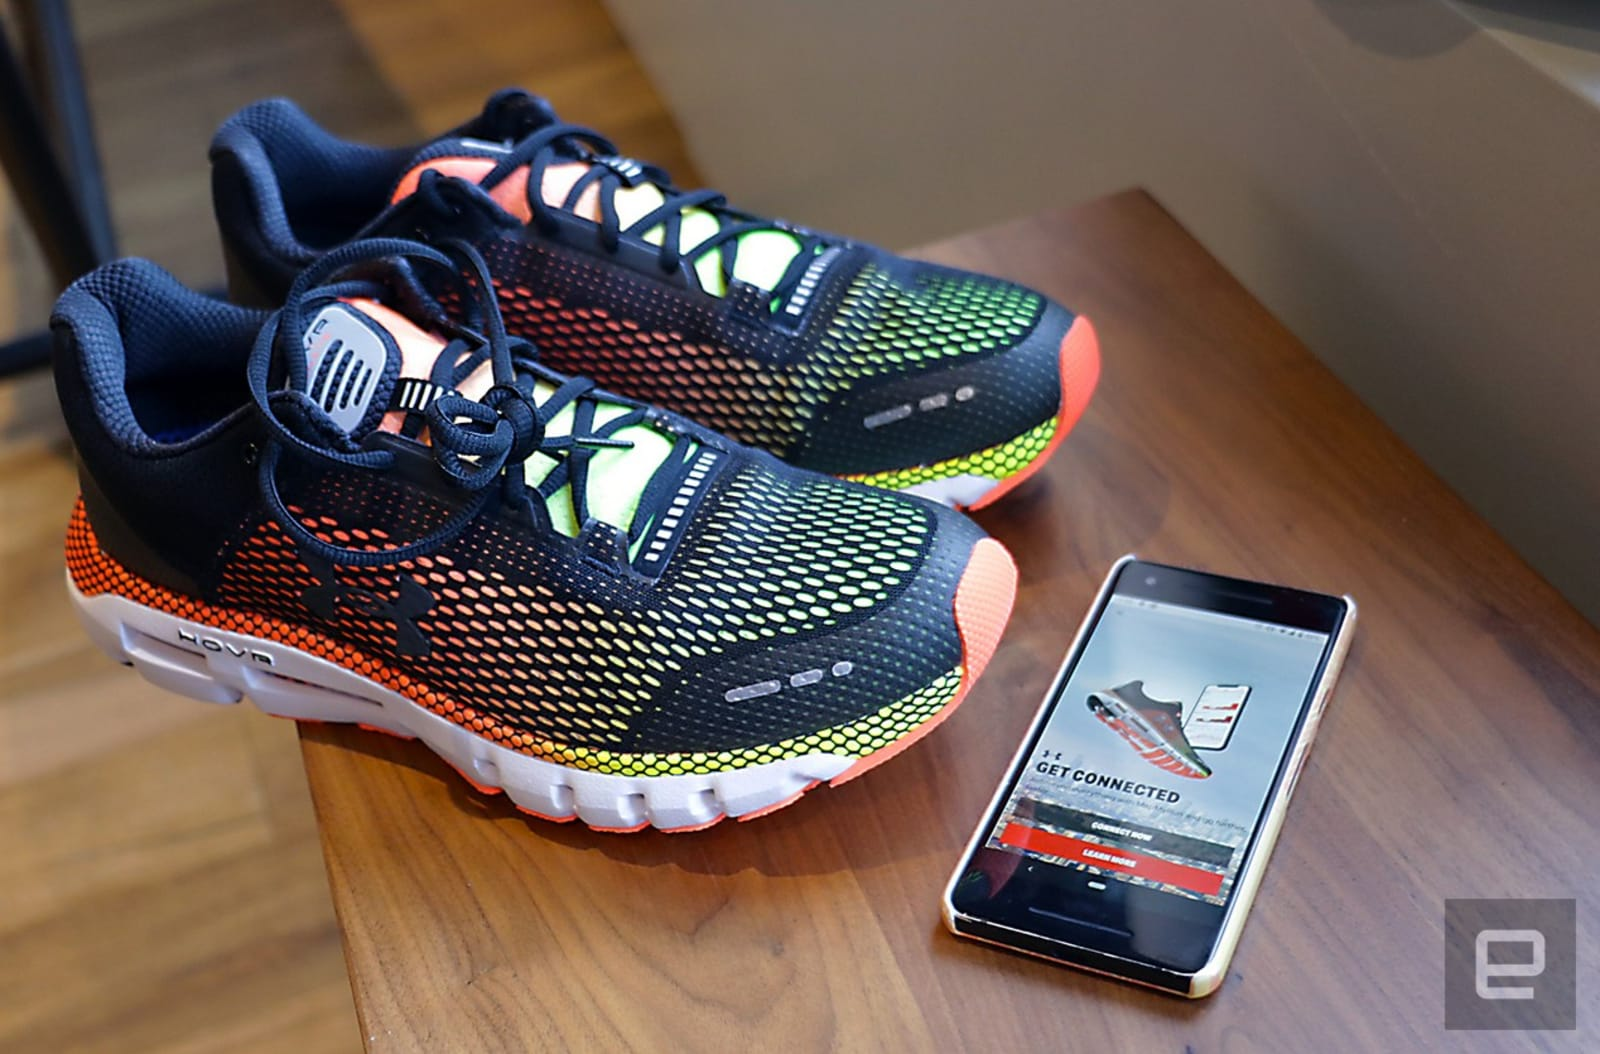 e44d78b09048 Under Armour has been making a major push into smart running shoes for a  couple of years now